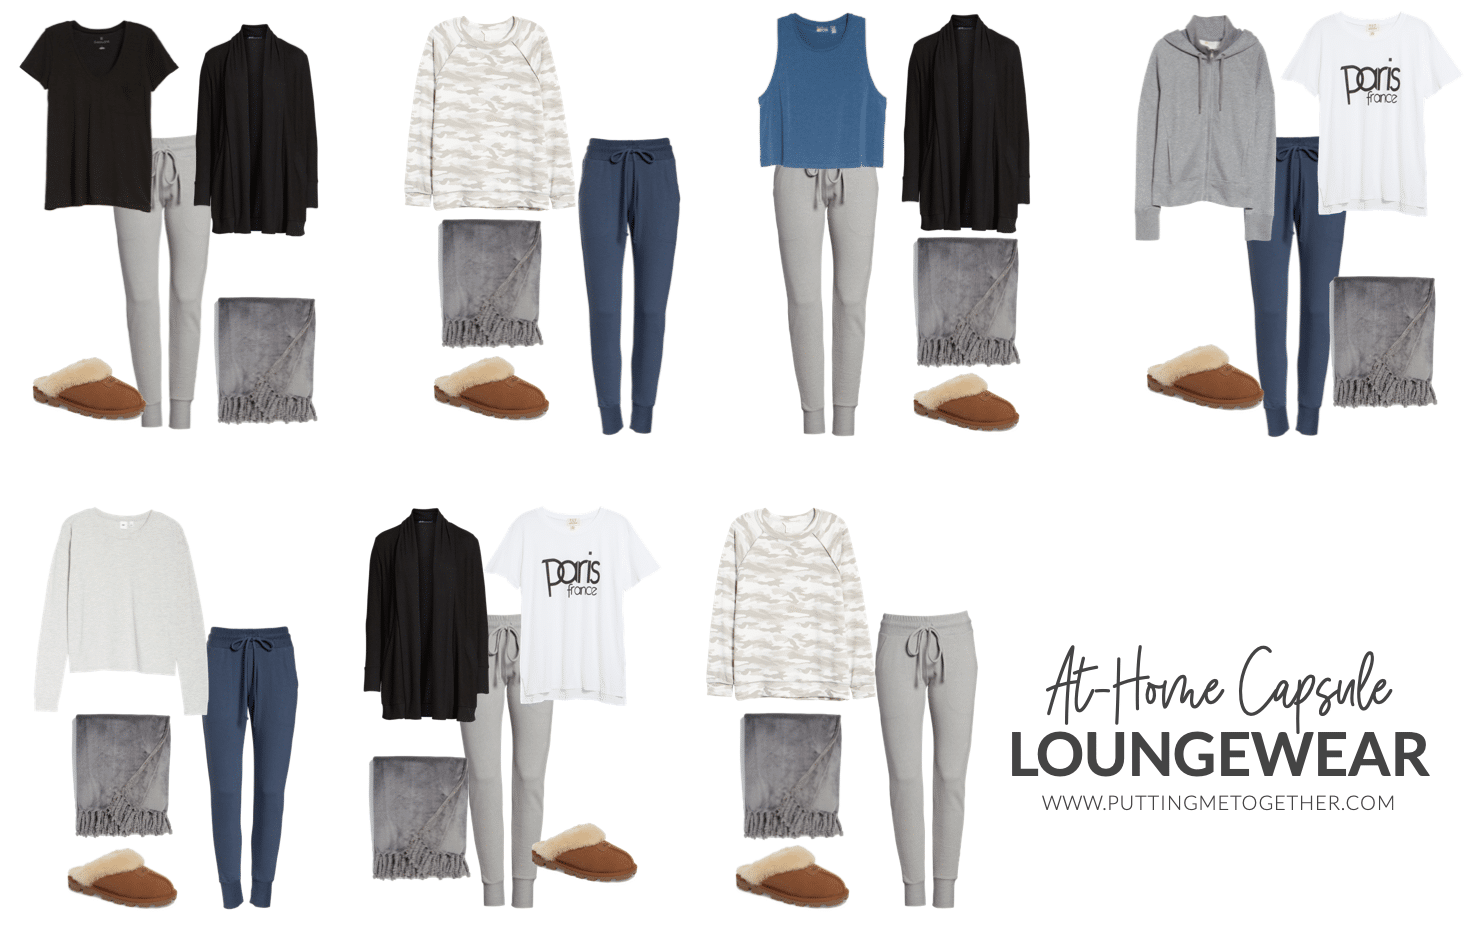 At-Home Capsule Wardrobe: Loungewear